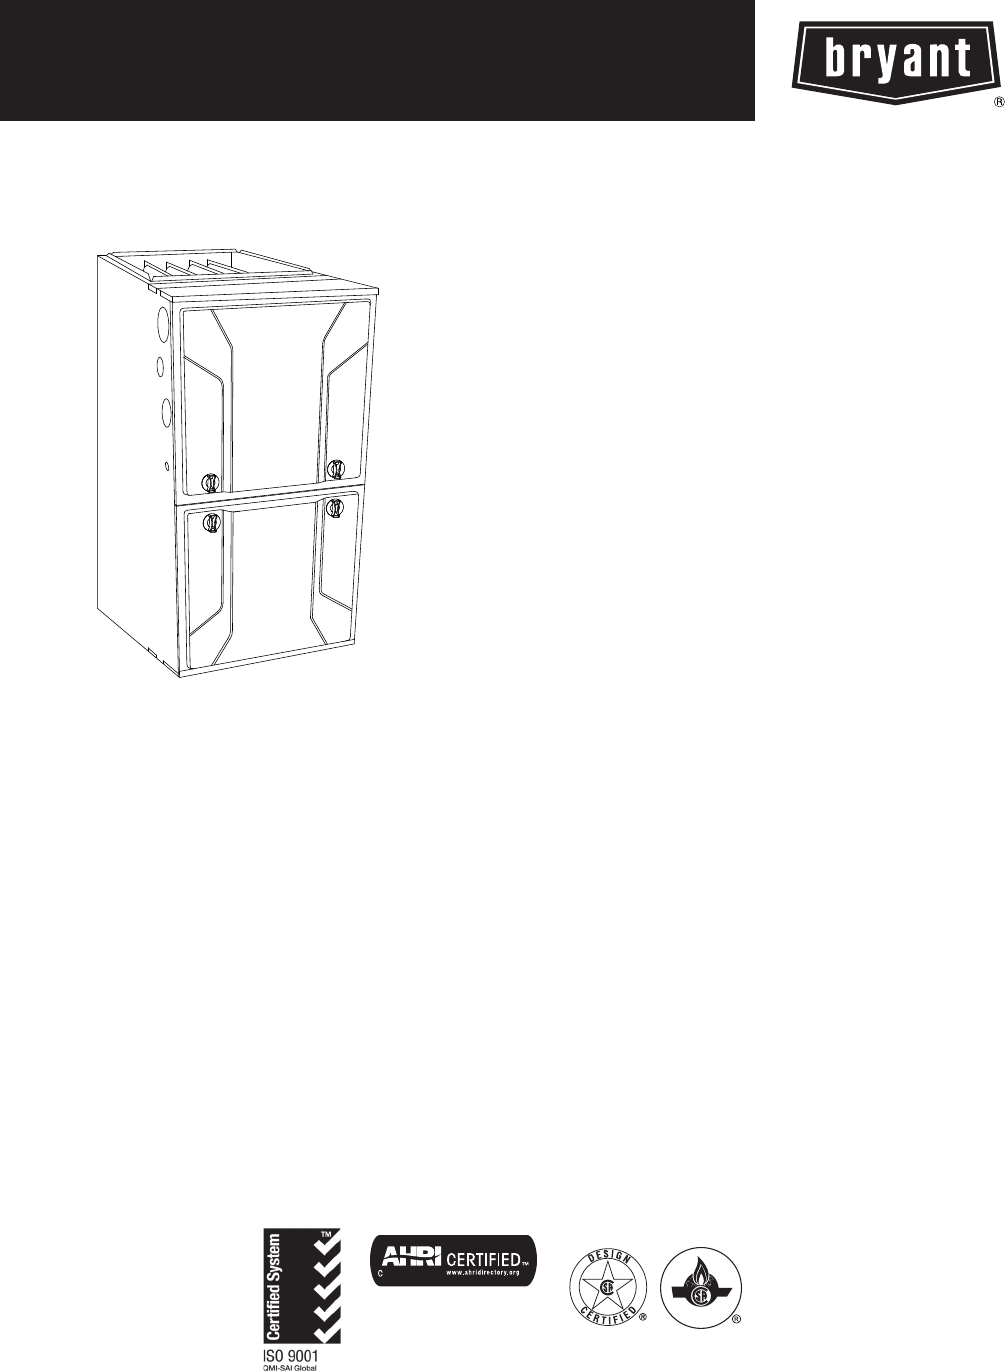 Bryant Furnace 915S User Guide